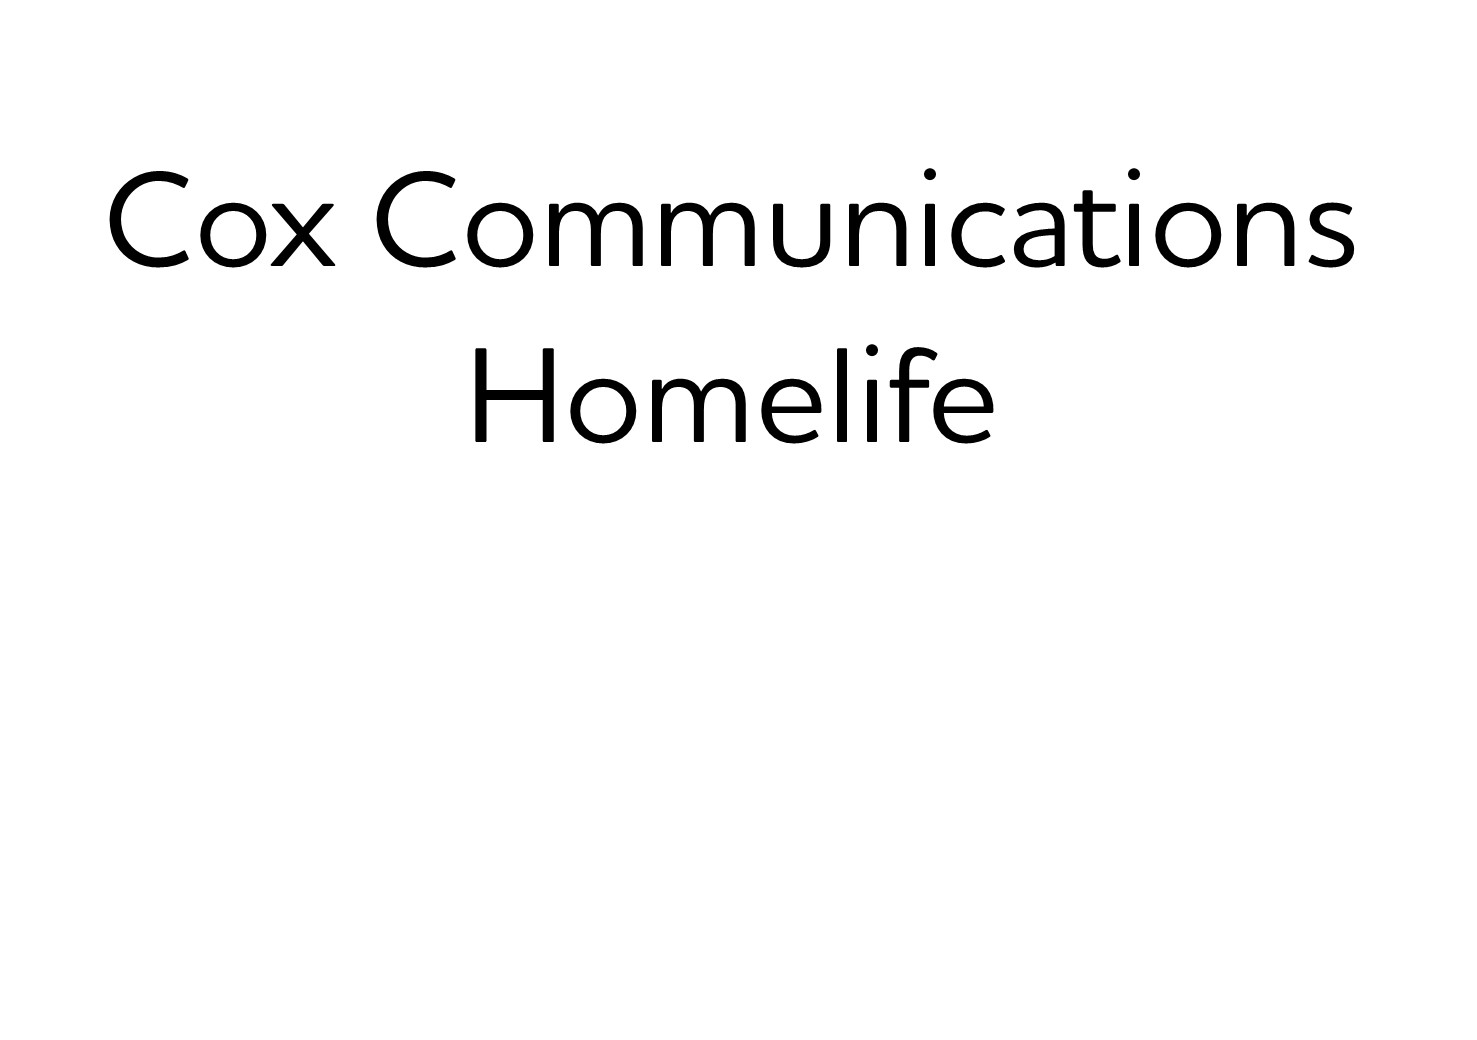 510. Cox Communications Homelife (Bronze)